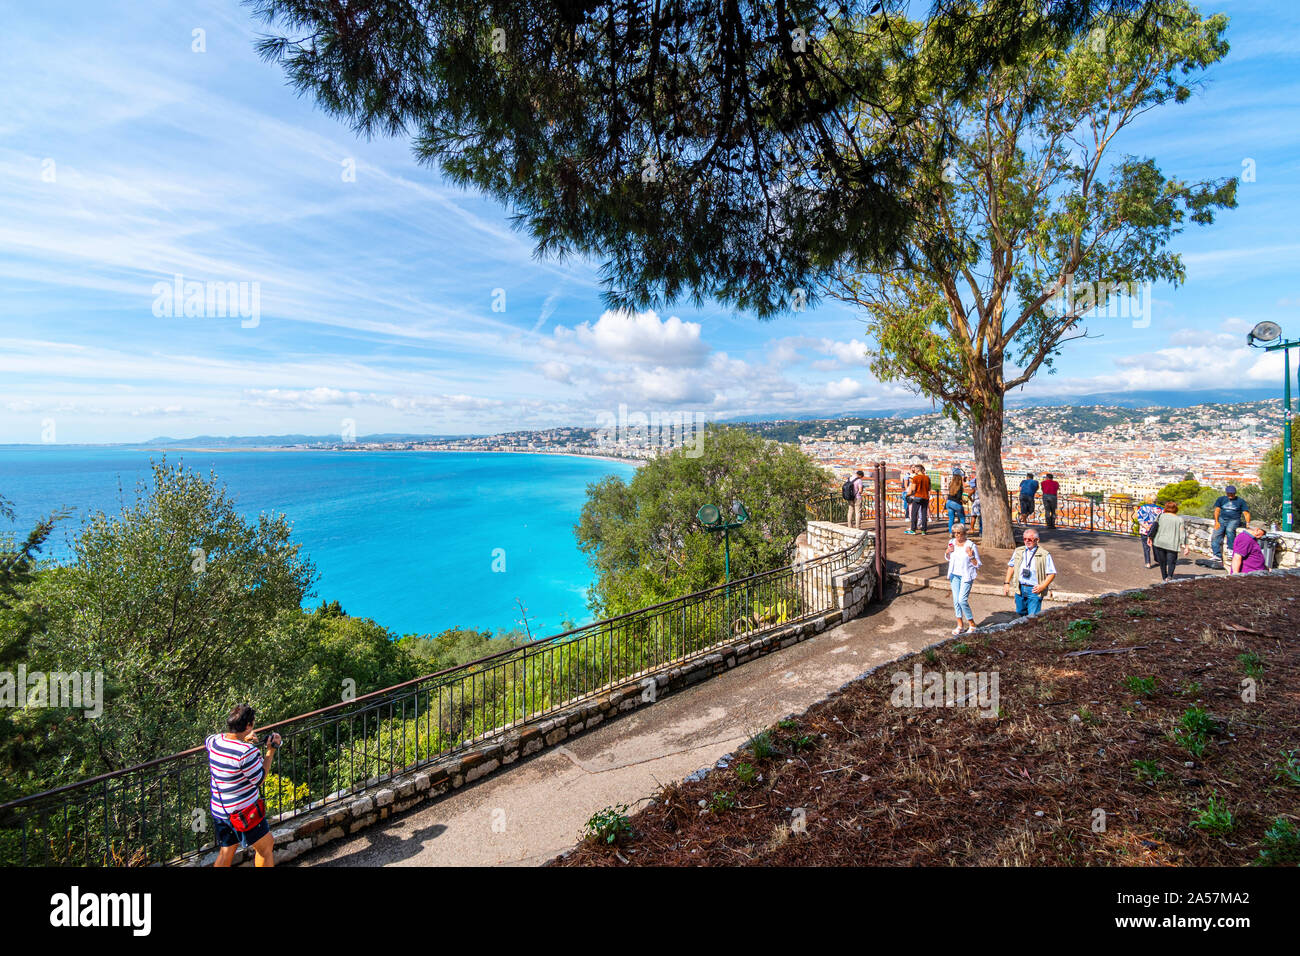 Tourists enjoy a summer day on Castle Hill overlooking the turquoise Mediterranean Sea and the city of Nice France, on the Riviera Stock Photo